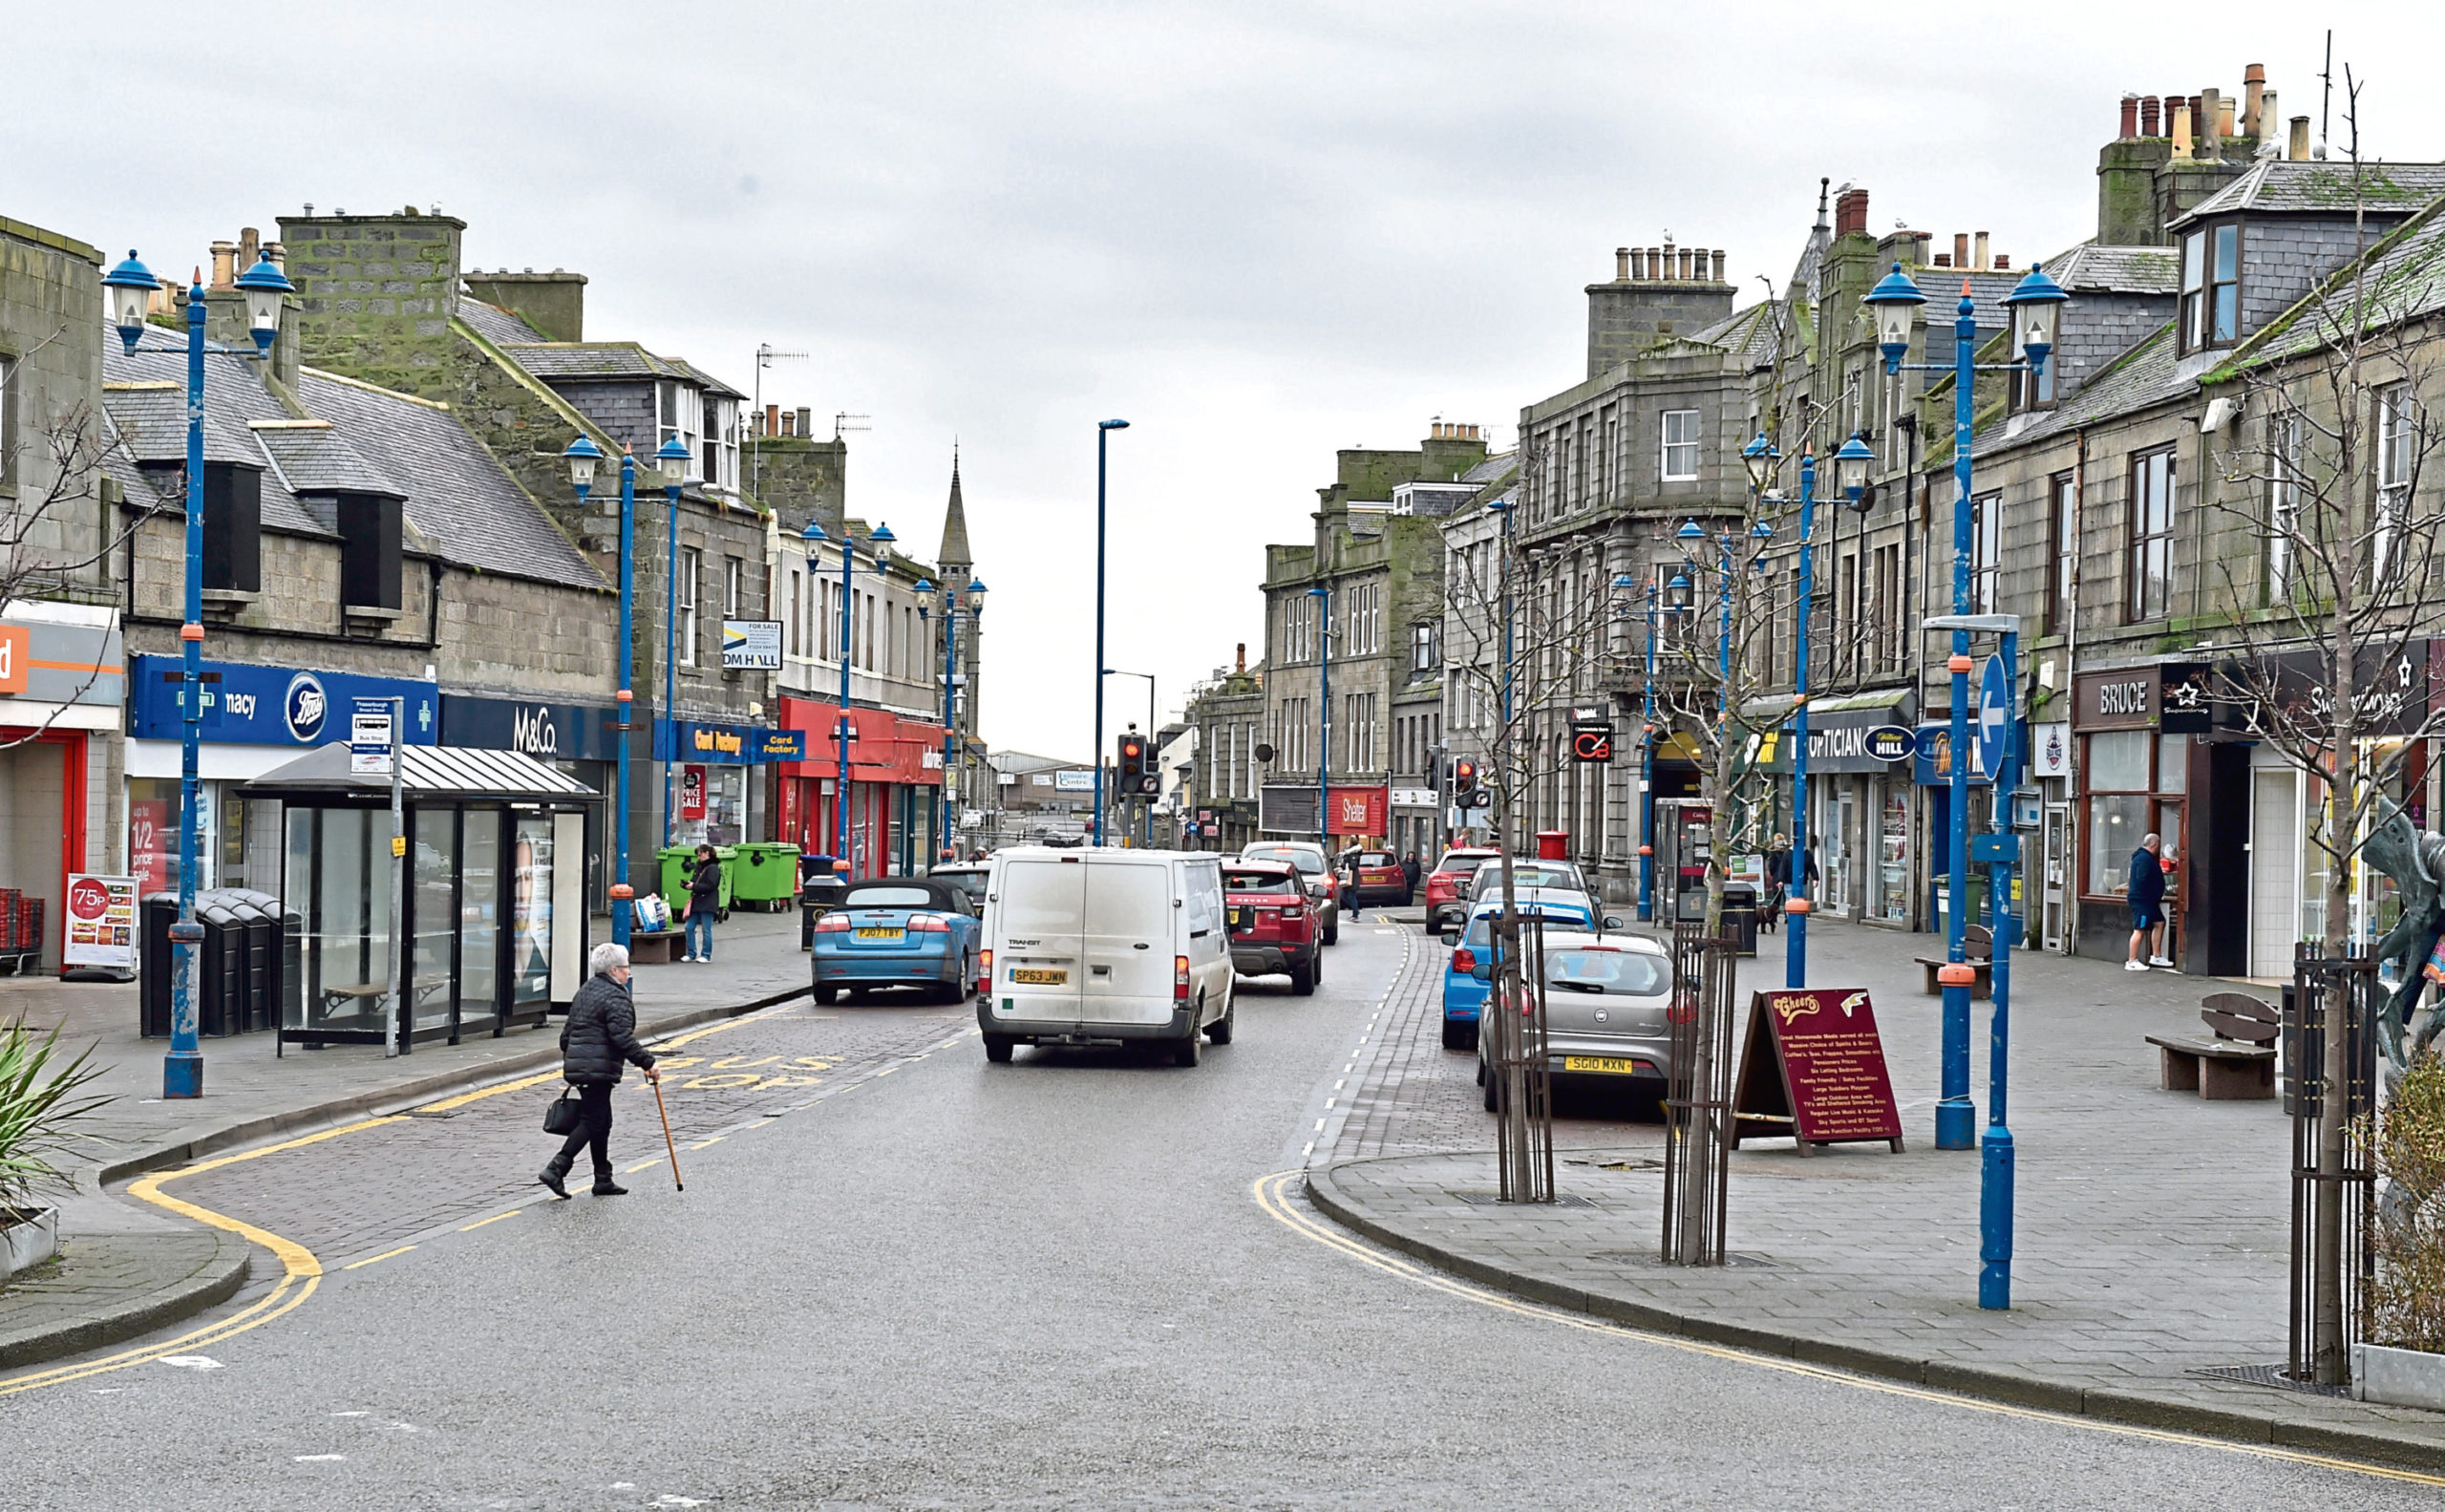 Physical distancing measures are hoped to be put in place by Aberdeenshire Council in town centres including Fraserburgh, pictured